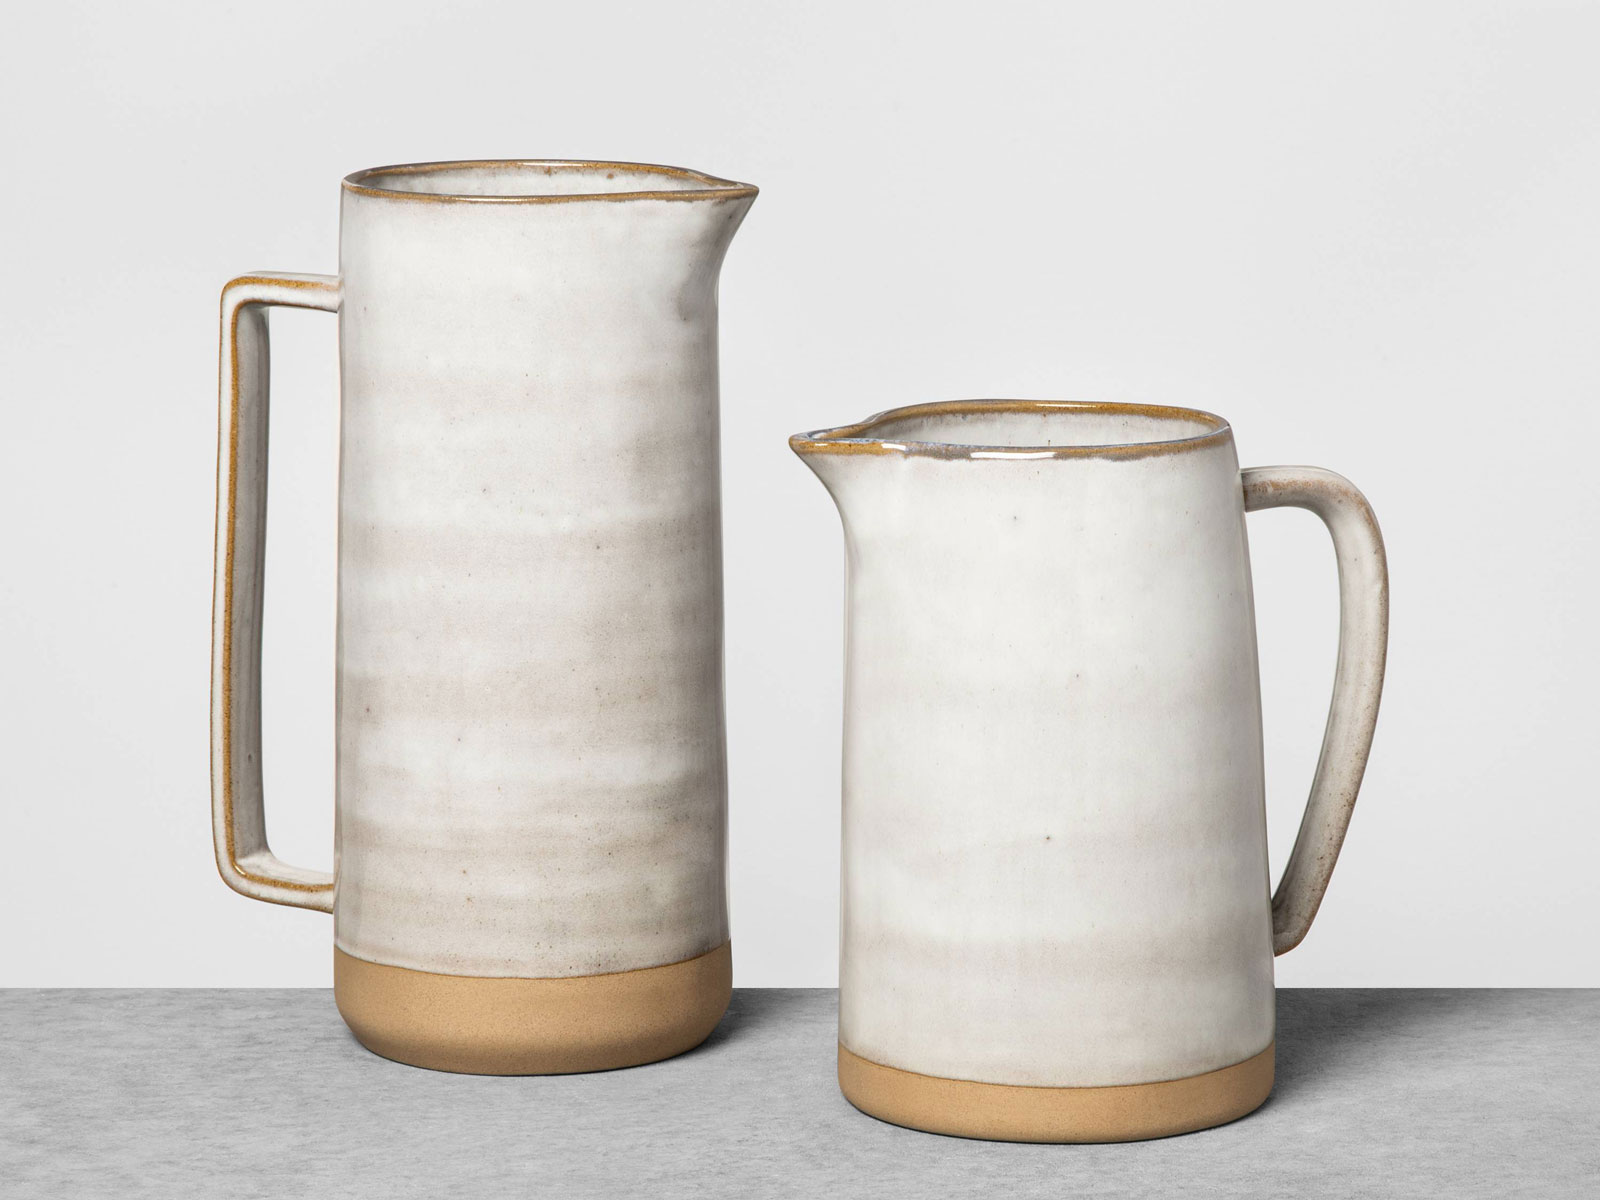 hearth and hand kitchen fall 2019 pitchers